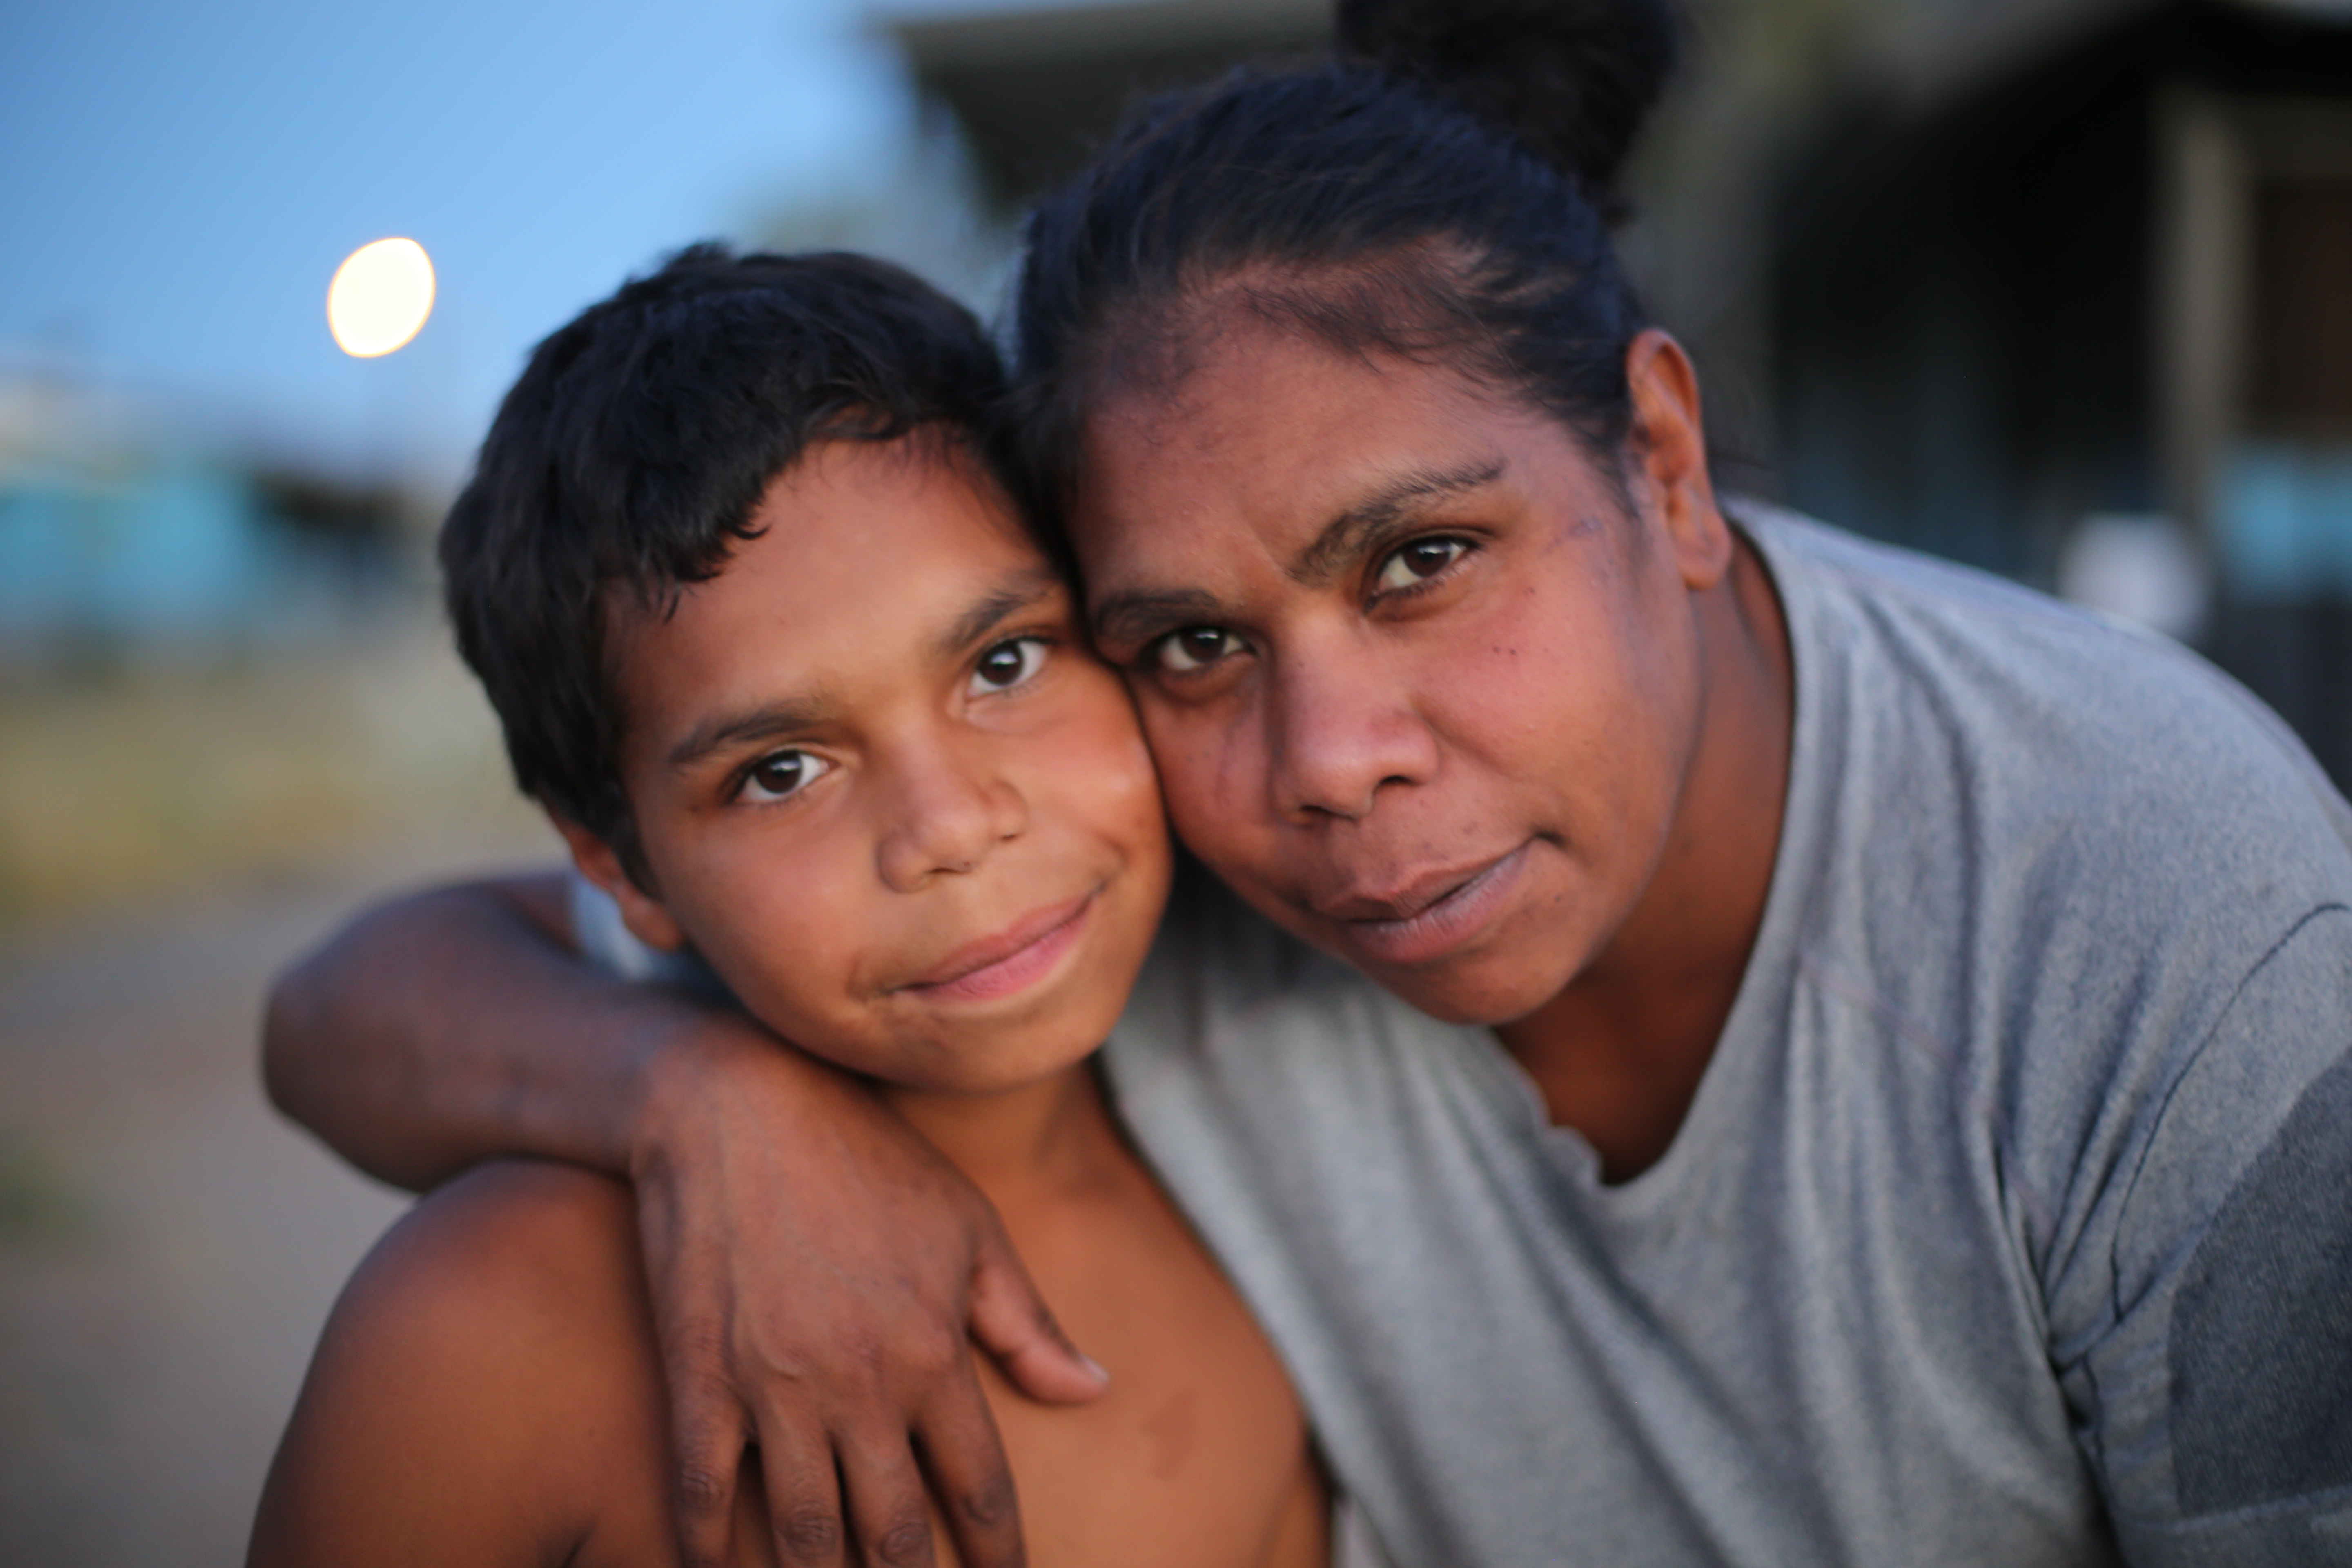 NACCHO Aboriginal Health News Alert : How you can watch and support new documentary @InMyBloodItRuns in Australian cinemas Feb 20. Follow ten-year-old Dujuan as he discovers the resilience and resistance of many generations